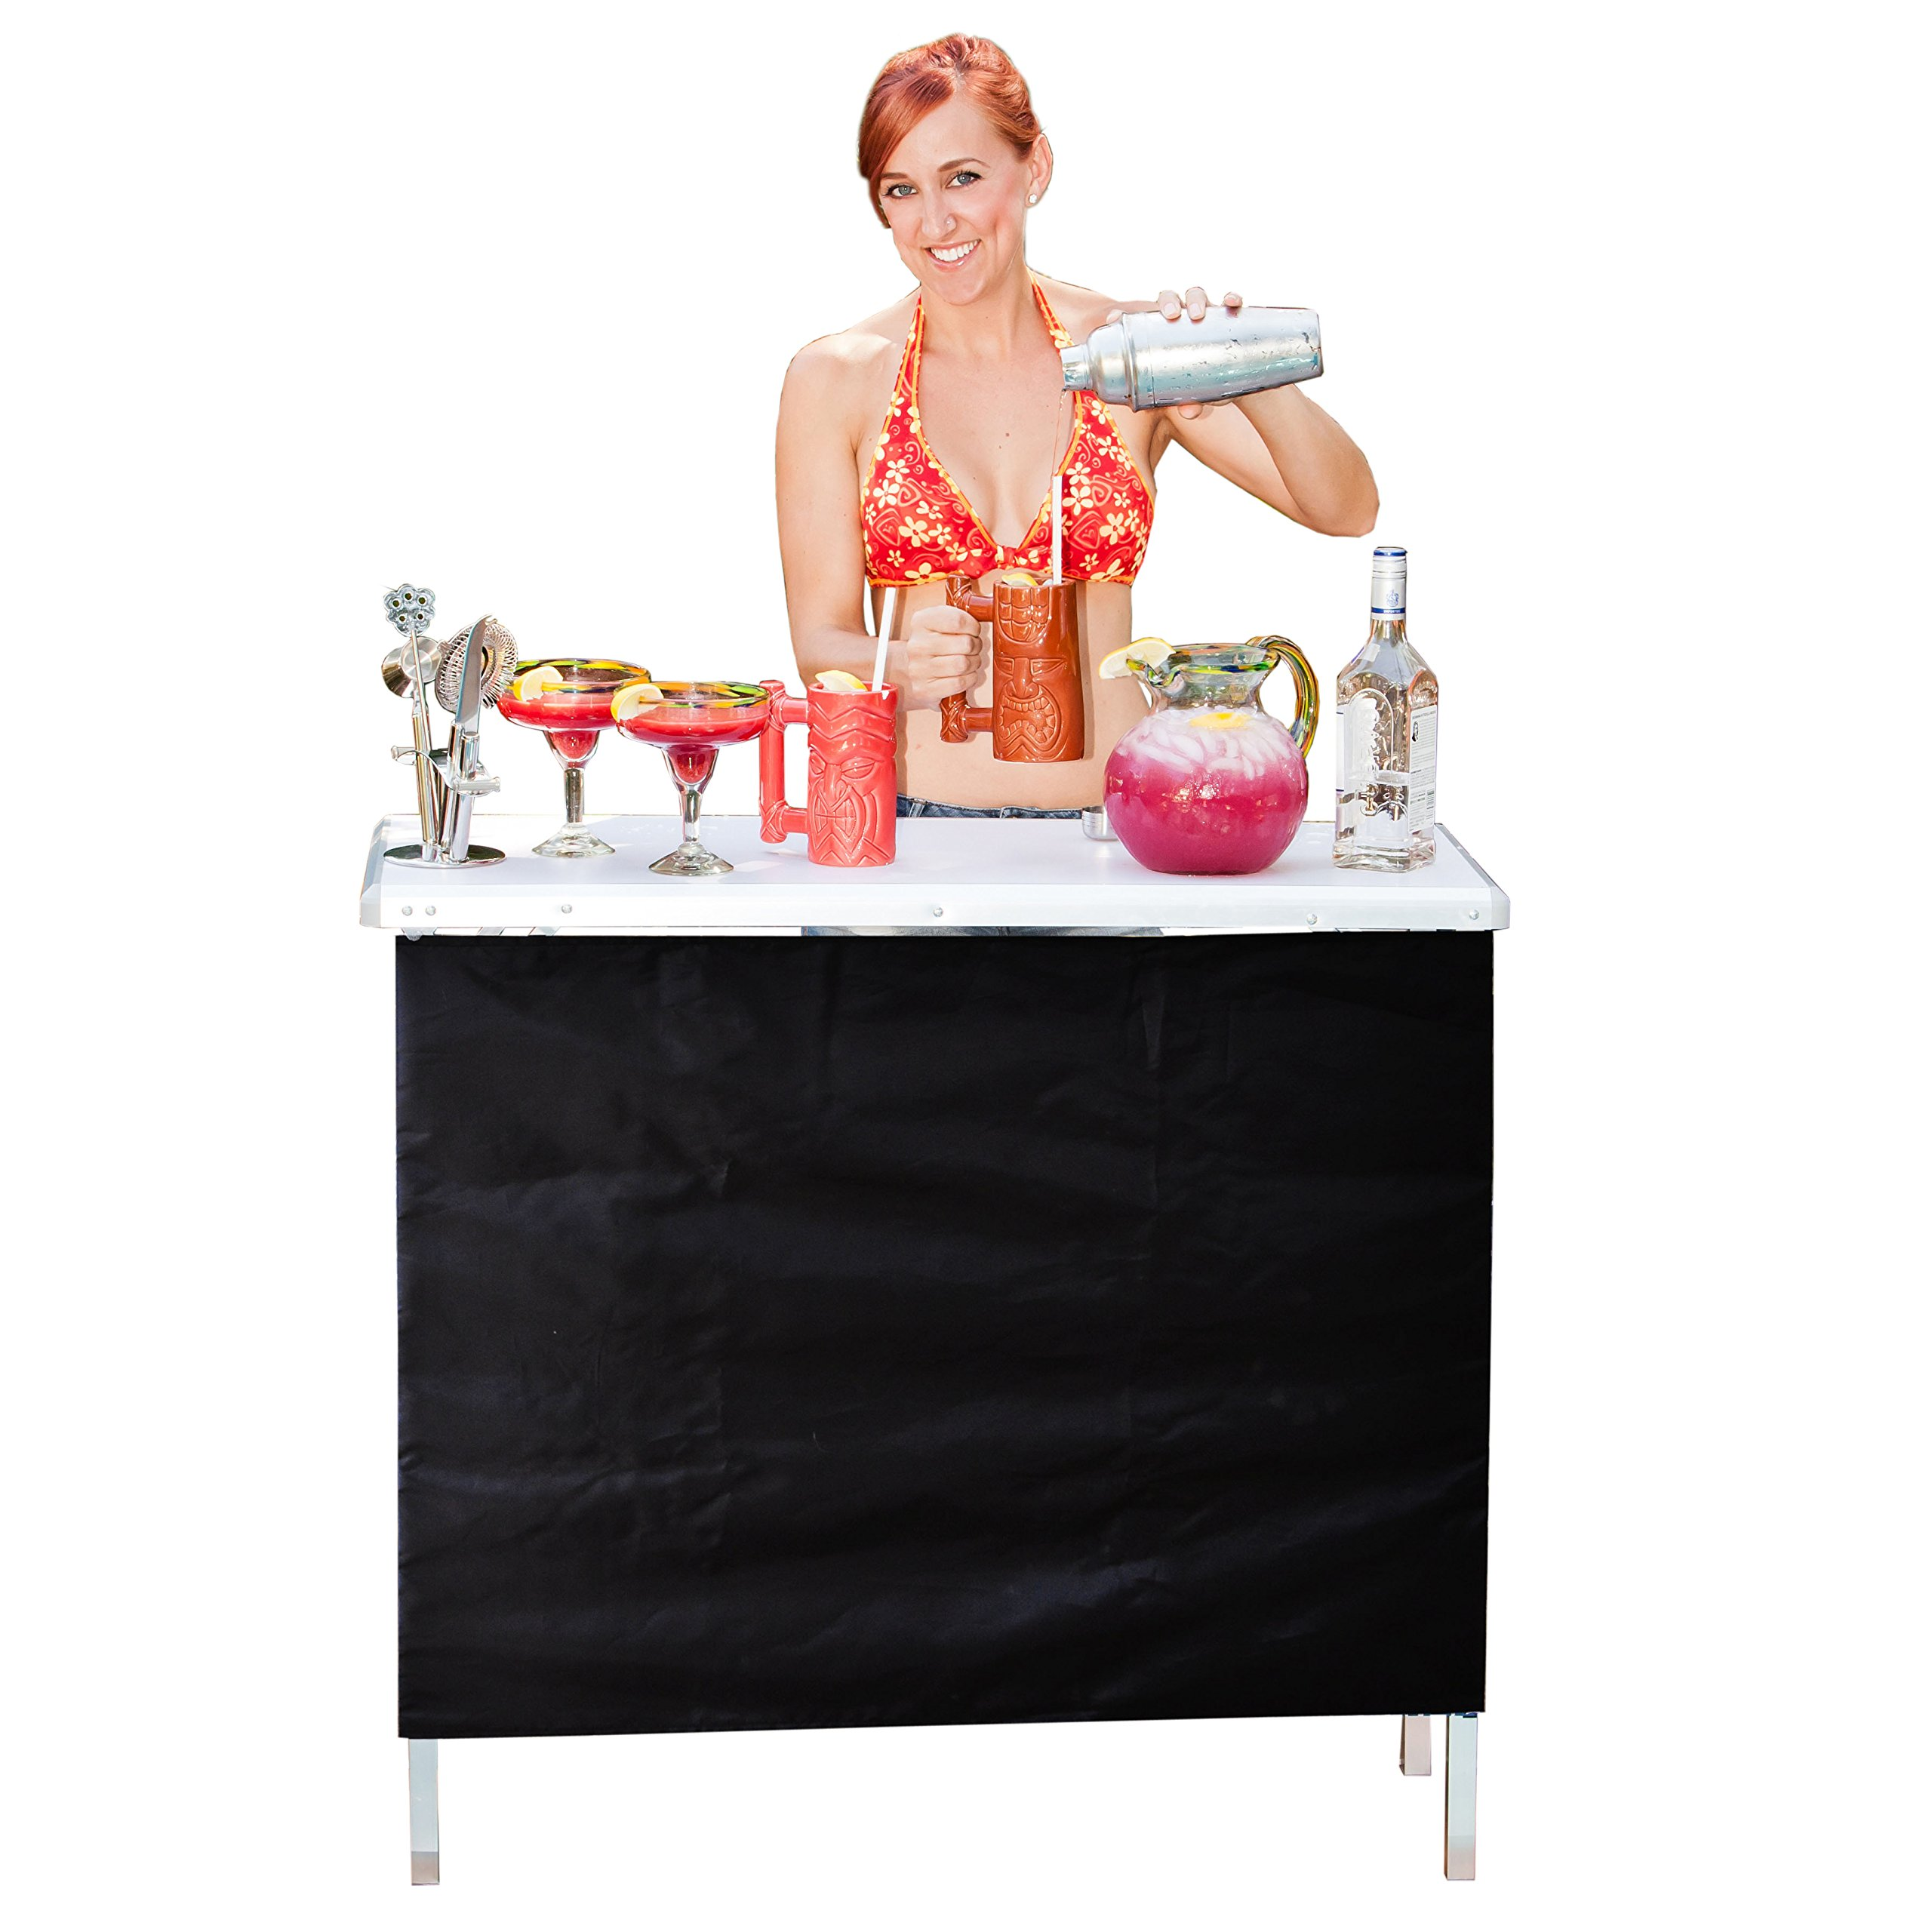 GoPong Portable High Top Party Bar Table with Shelf - (15L x 39W x 36H) - Includes 3 Front Skirts and Carrying Case by GoPong